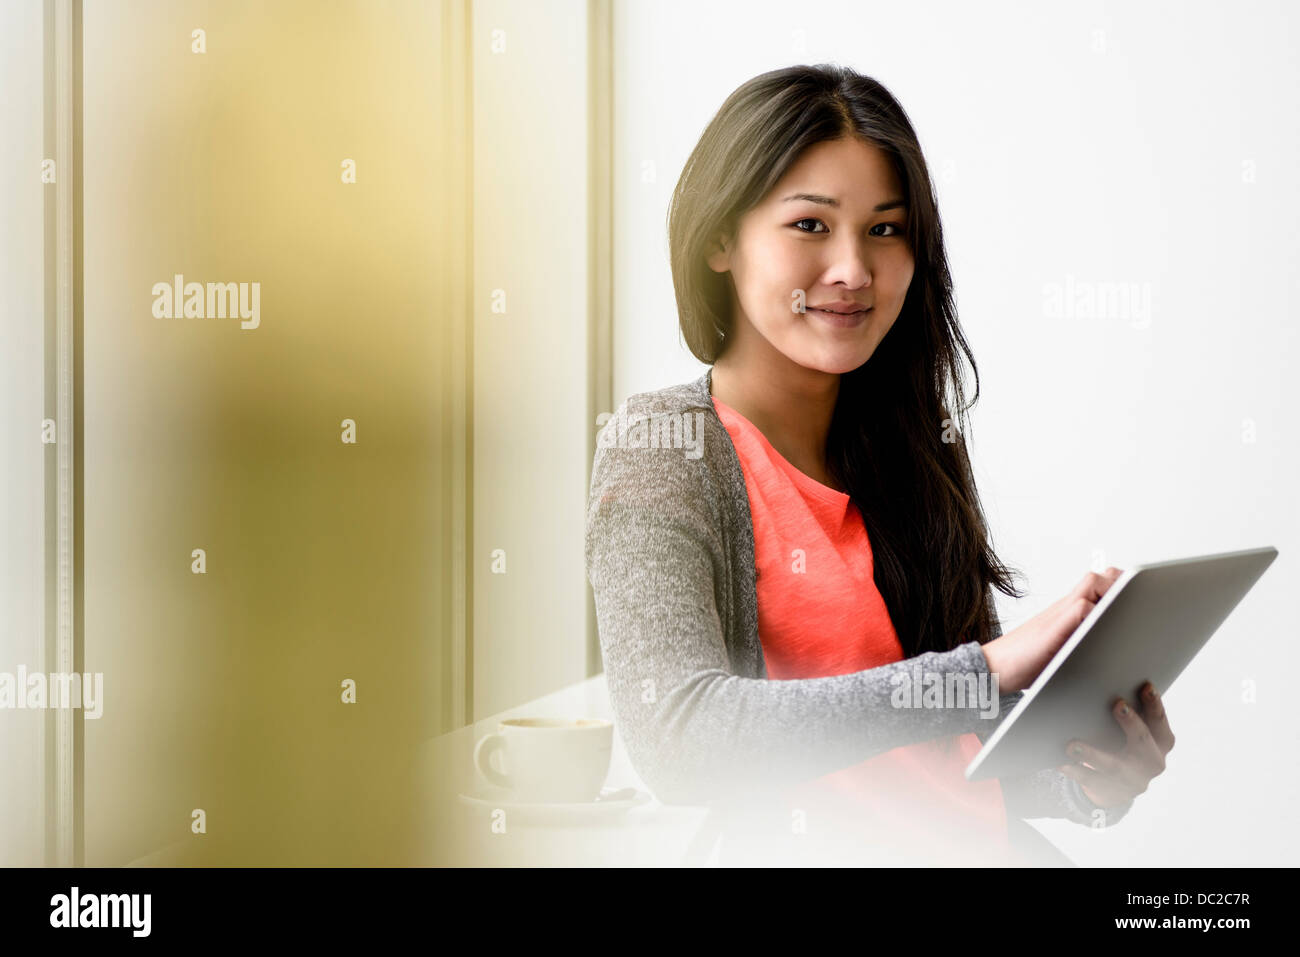 Woman looking up from digital tablet - Stock Image